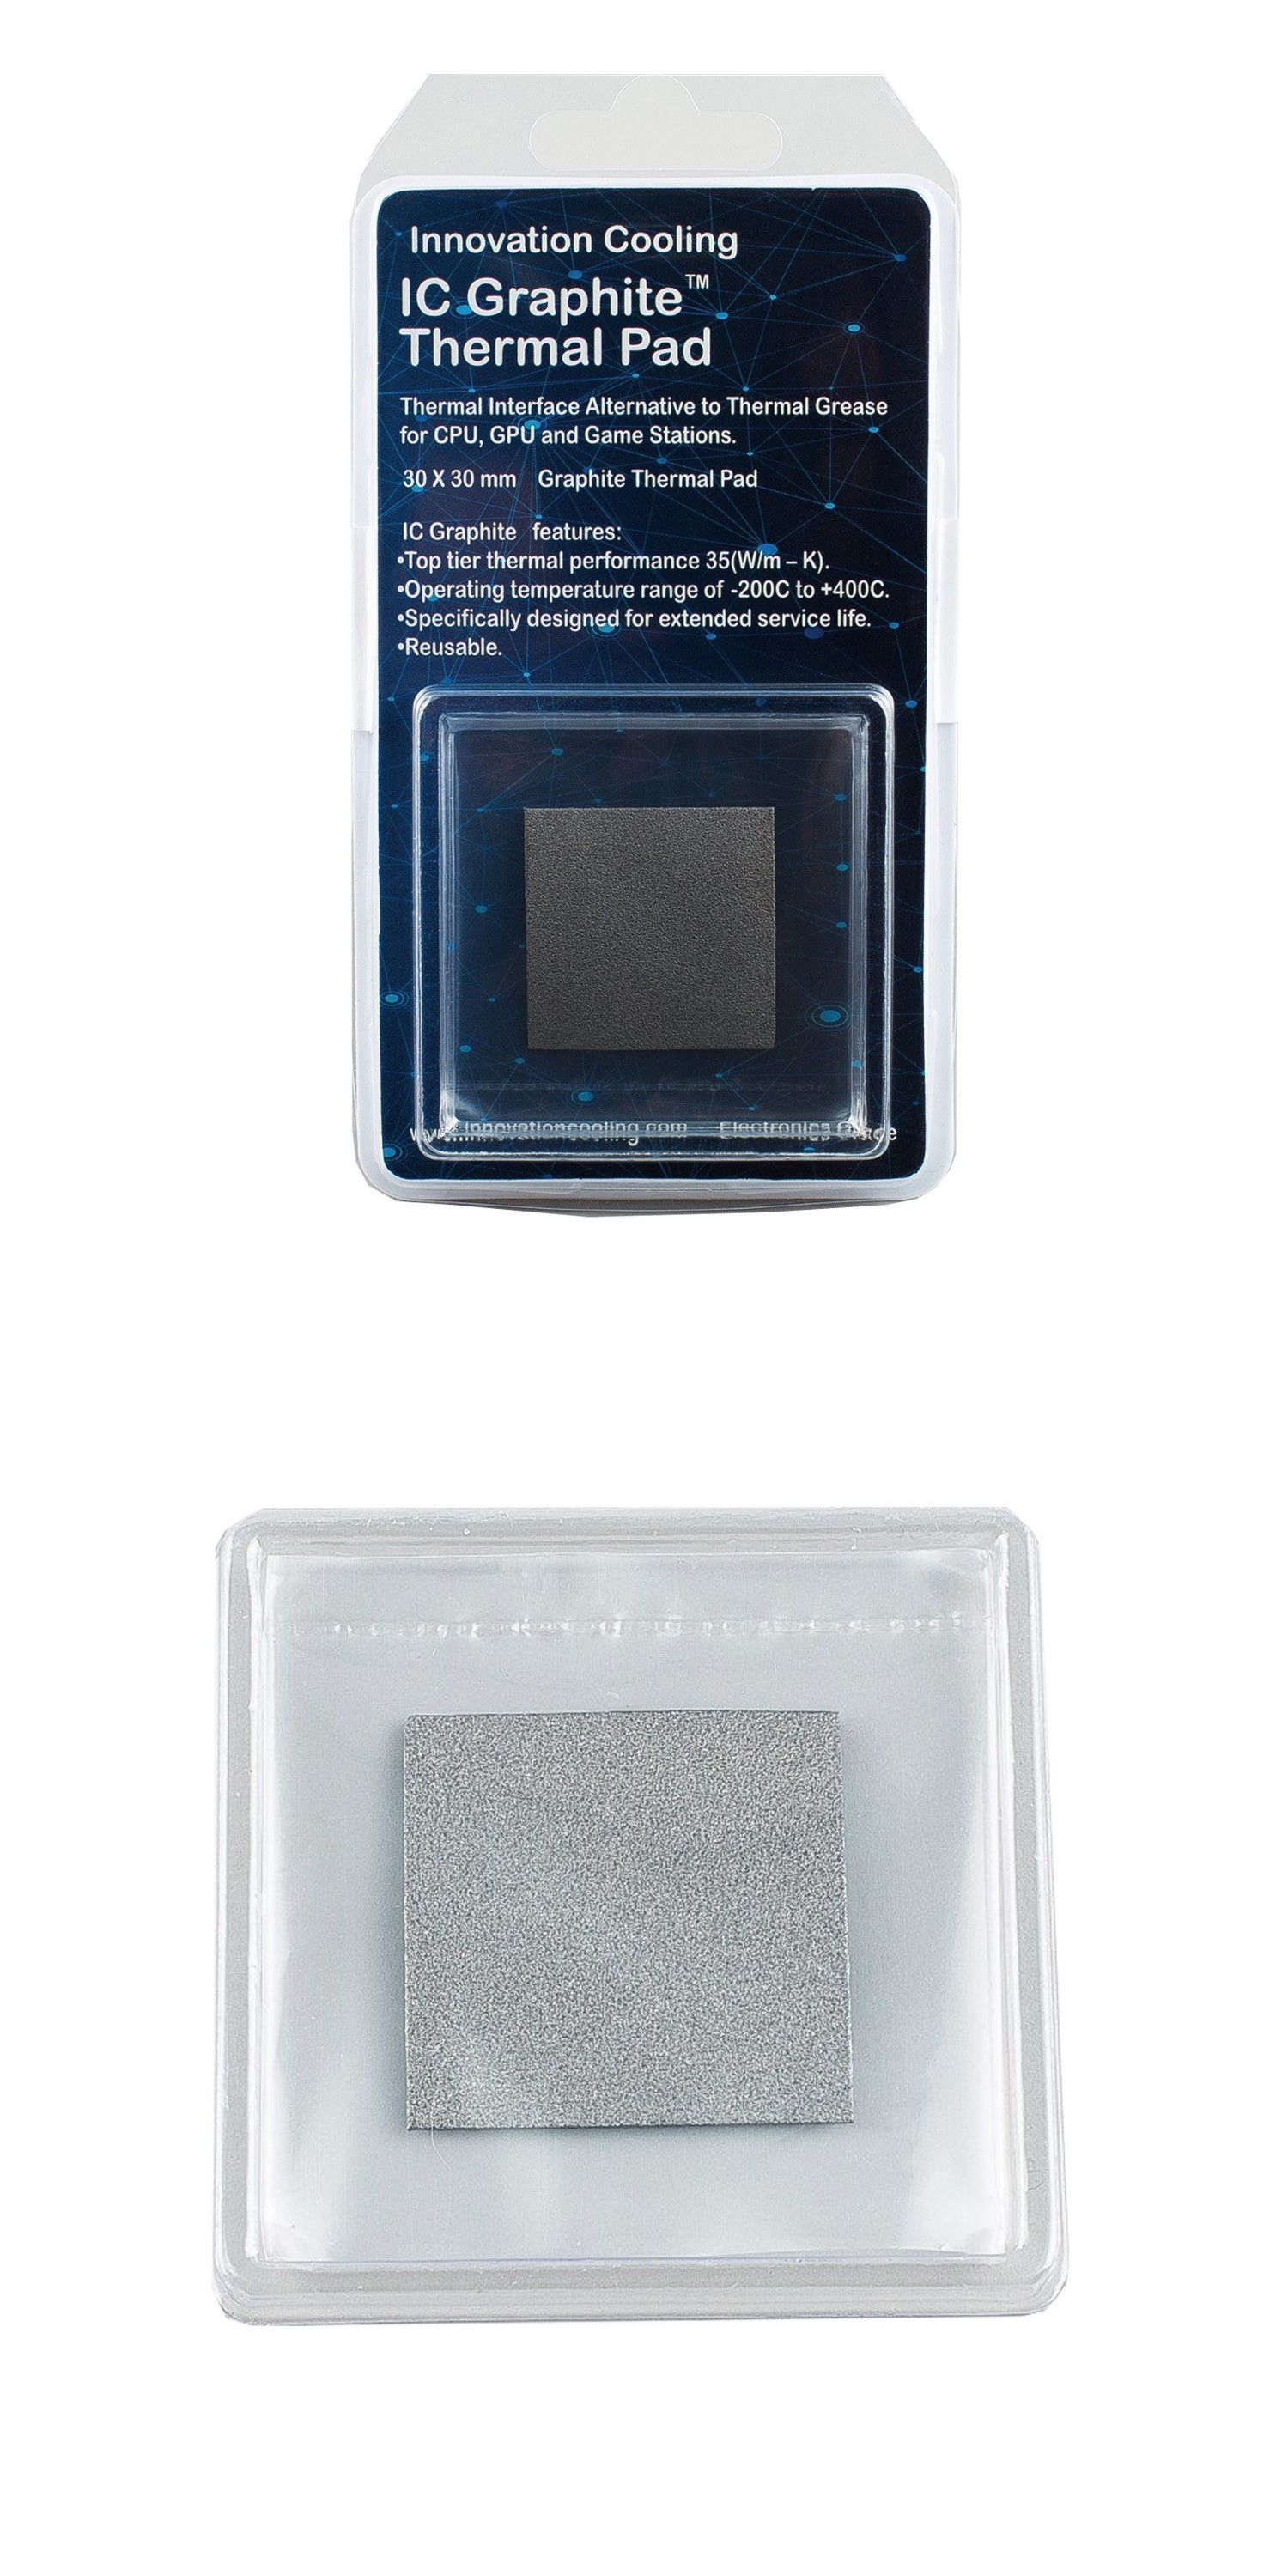 Details About Innovation Cooling Graphite Thermal Pad Alternative